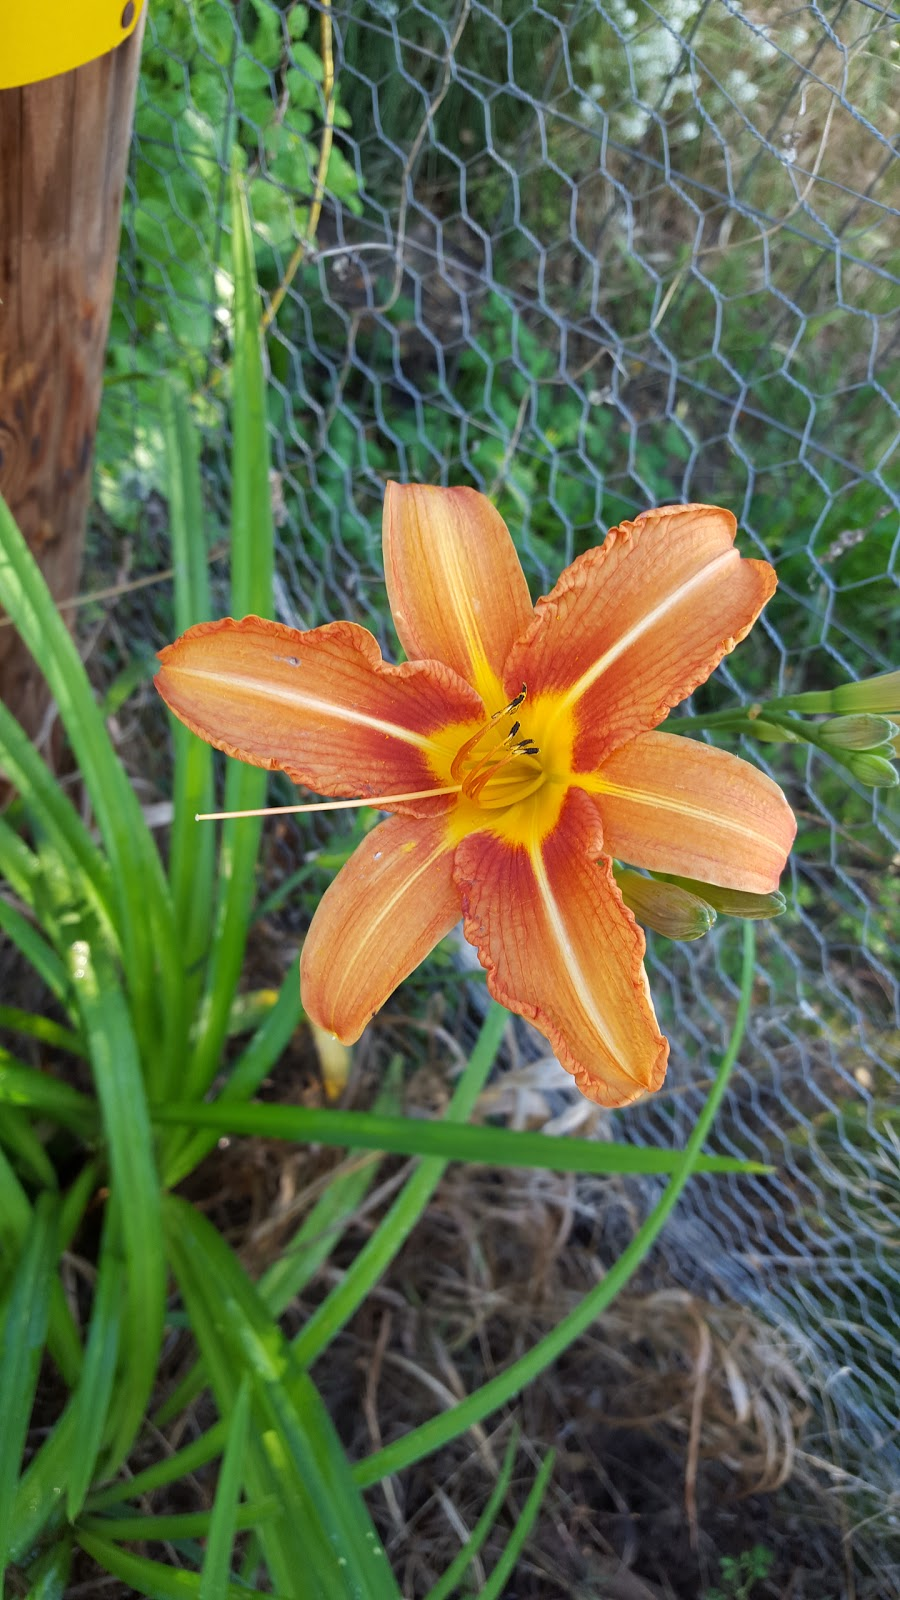 Medicinal and edible plants the edible daylily the daylily hemerocallis fulva seems to only be appreciated for its beauty these days but it also has another use nearly all parts of the daylily are izmirmasajfo